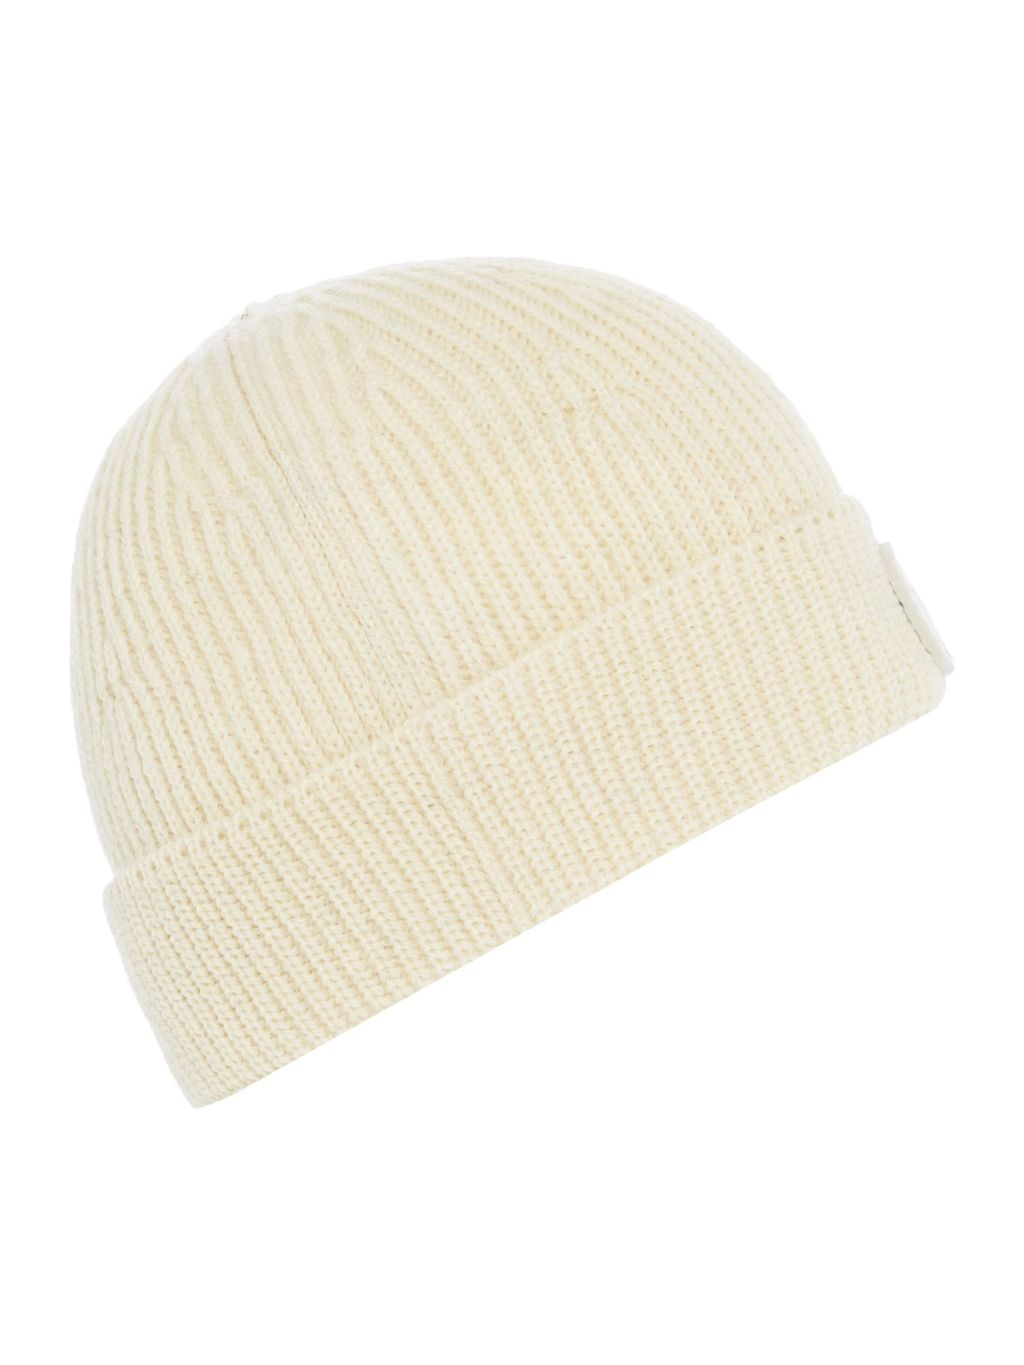 Knitted Beanie Hat, Beige - predominant colour: ivory/cream; occasions: casual; type of pattern: standard; style: beanie; size: standard; material: knits; pattern: plain; season: s/s 2016; wardrobe: basic